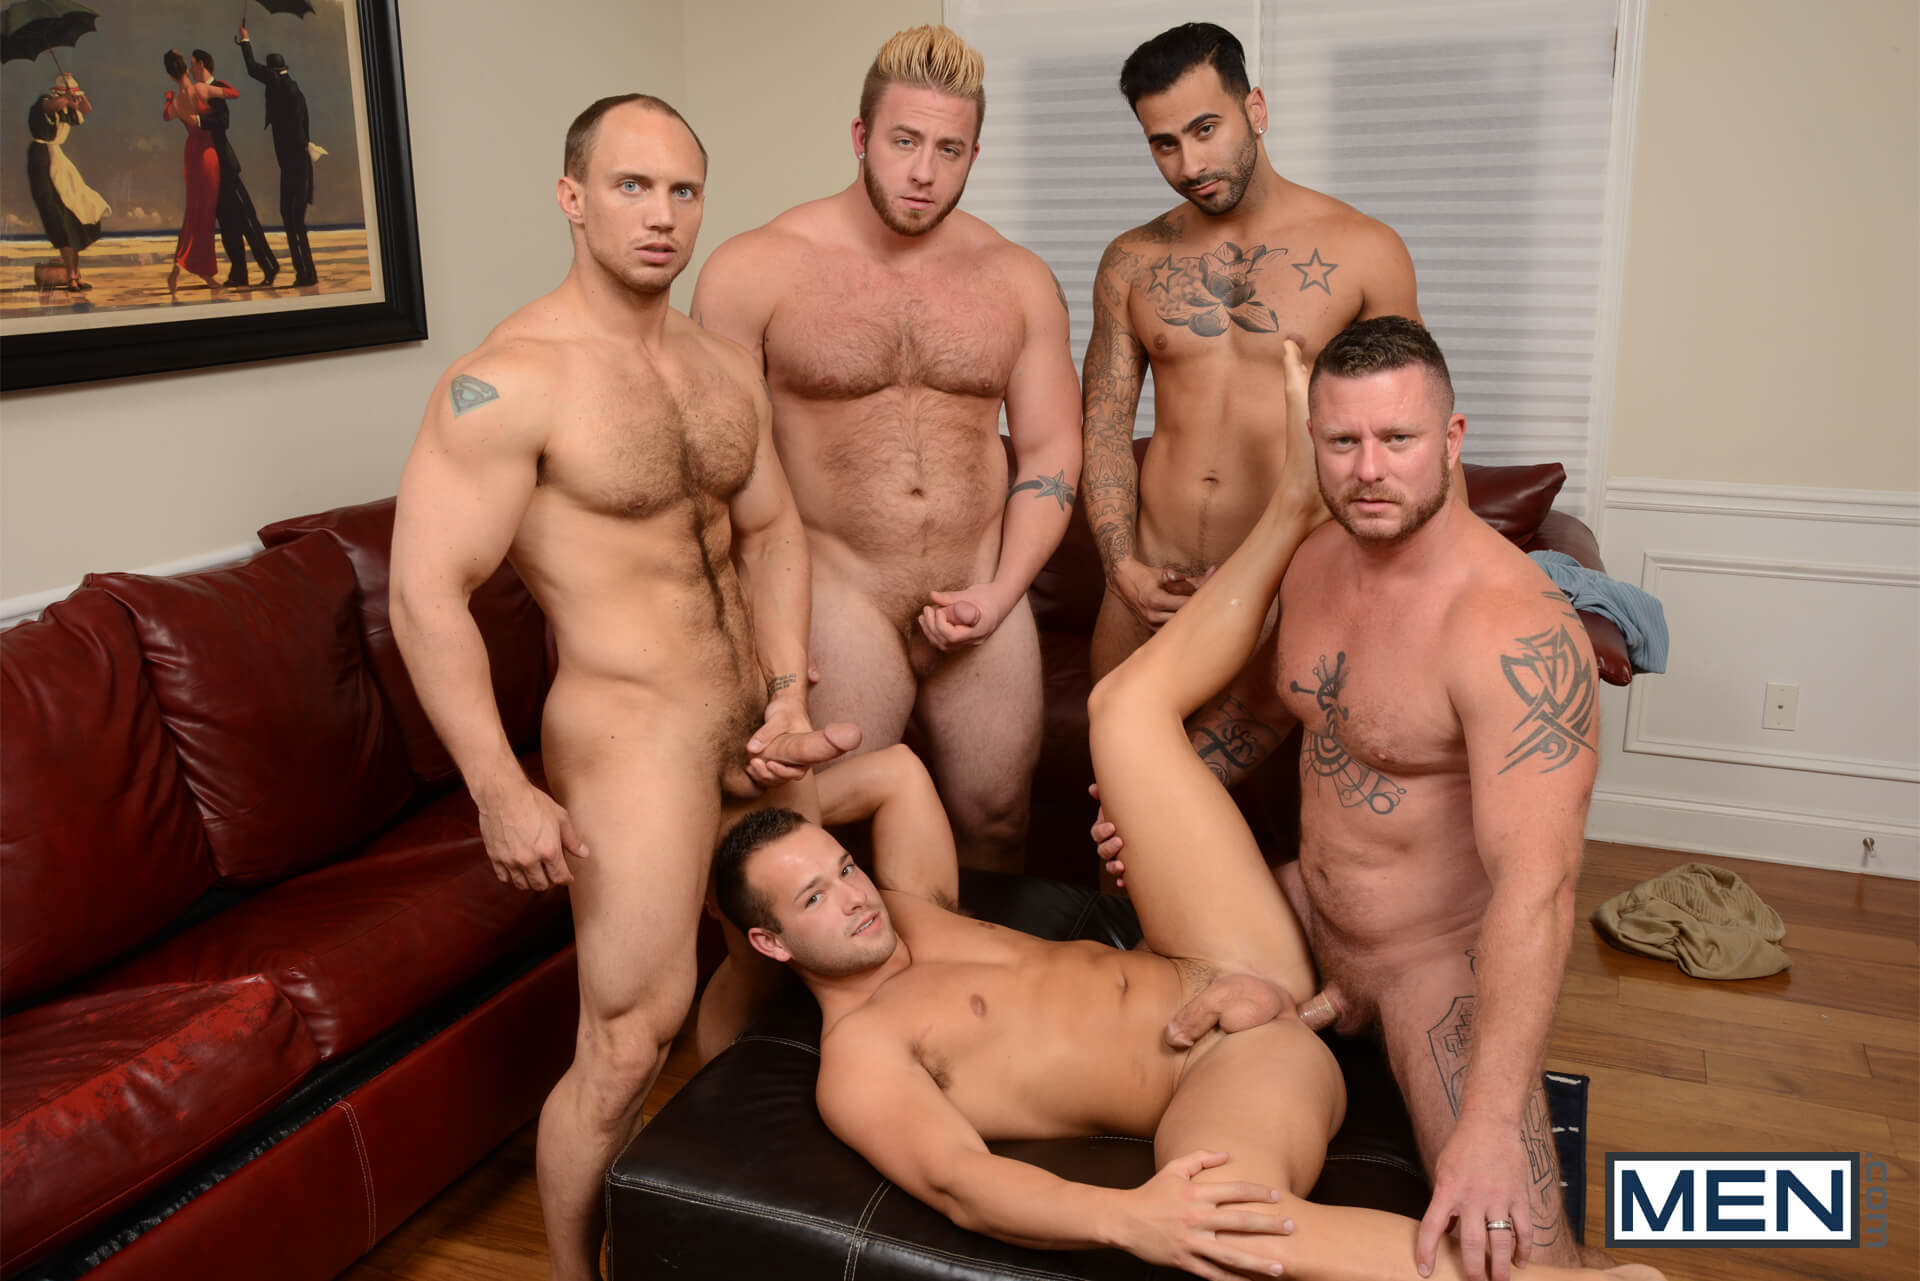 men jizz orgy my two daddies part 3 aaron bruiser charlie harding john magnum luke adams rikk york gay porn blog image 17